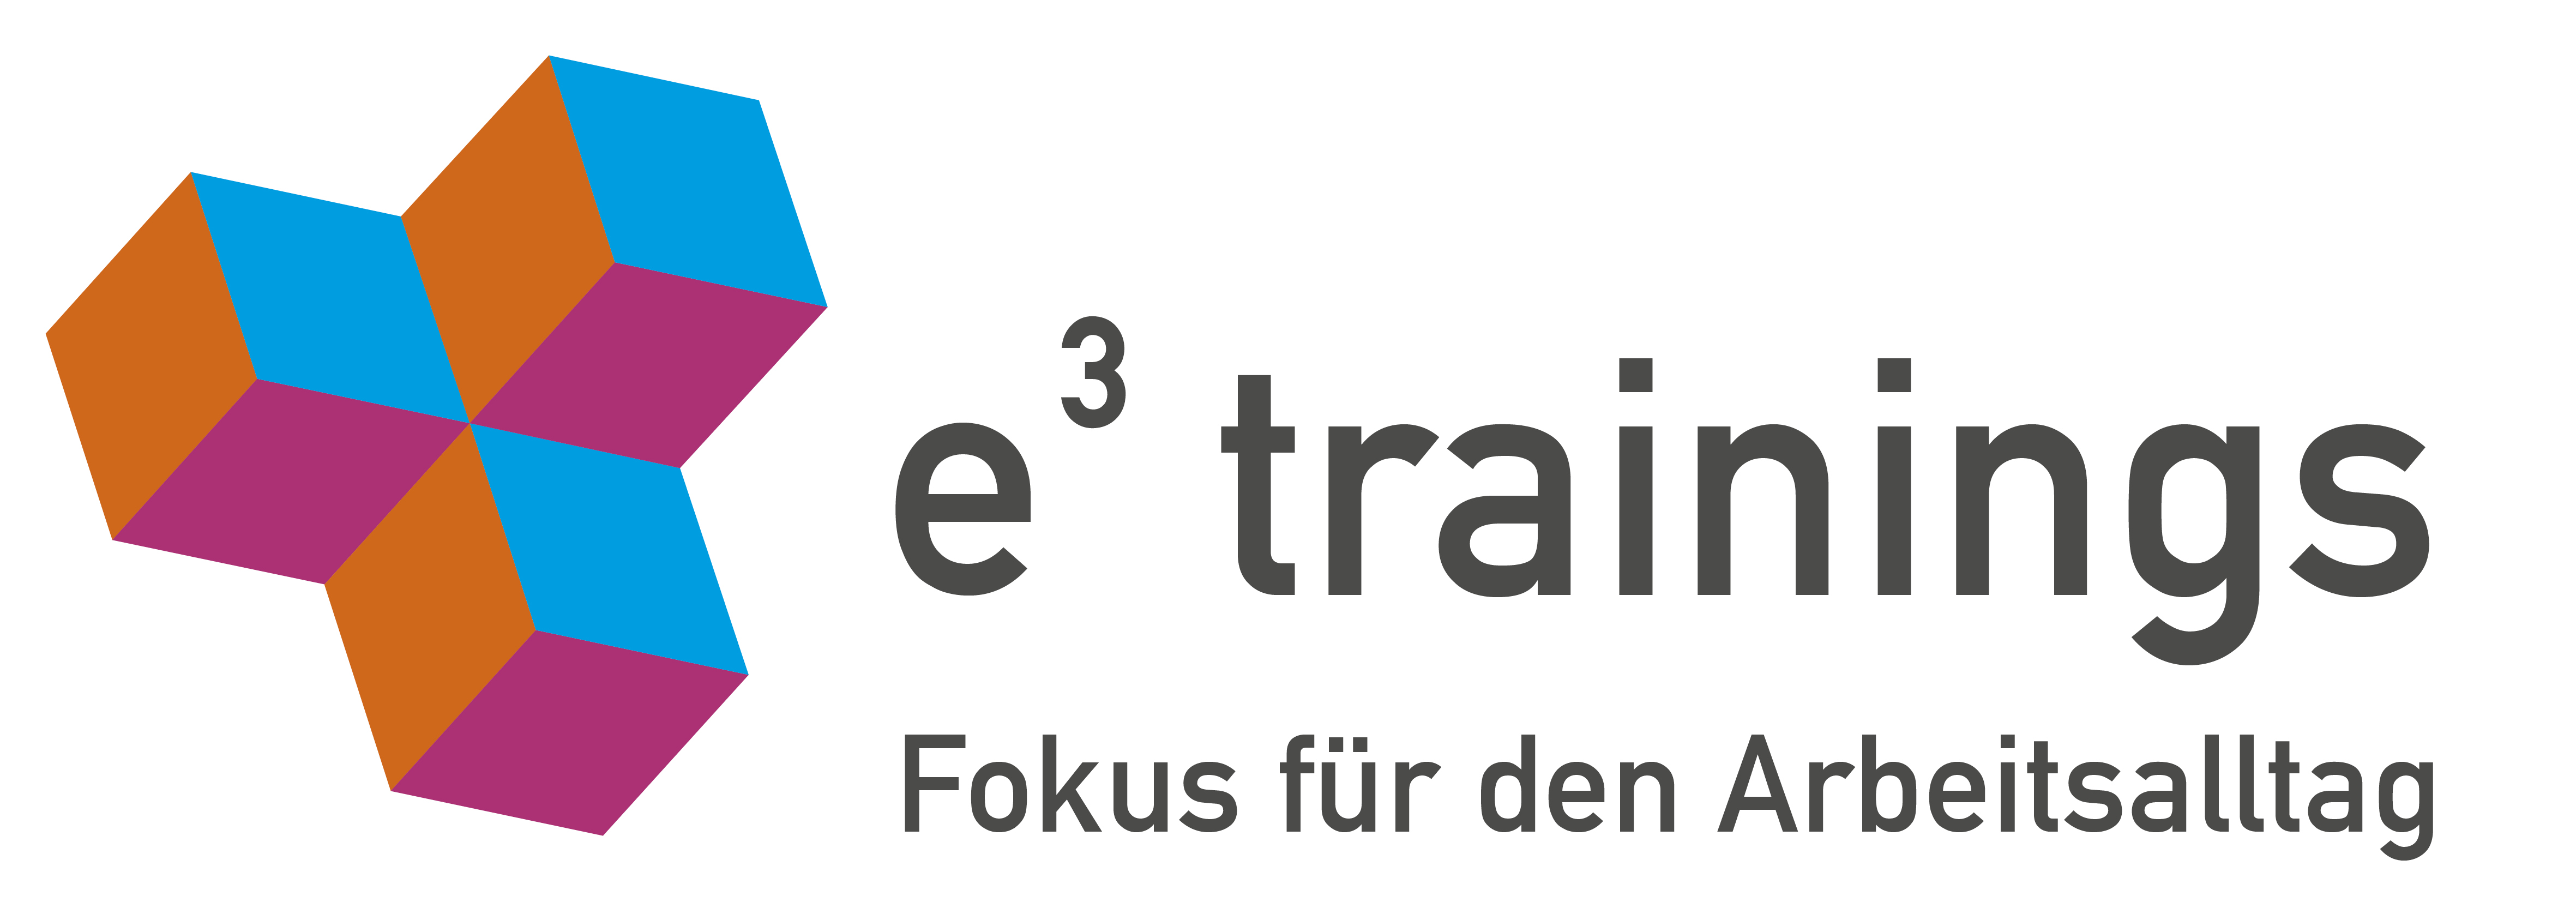 e3trainings